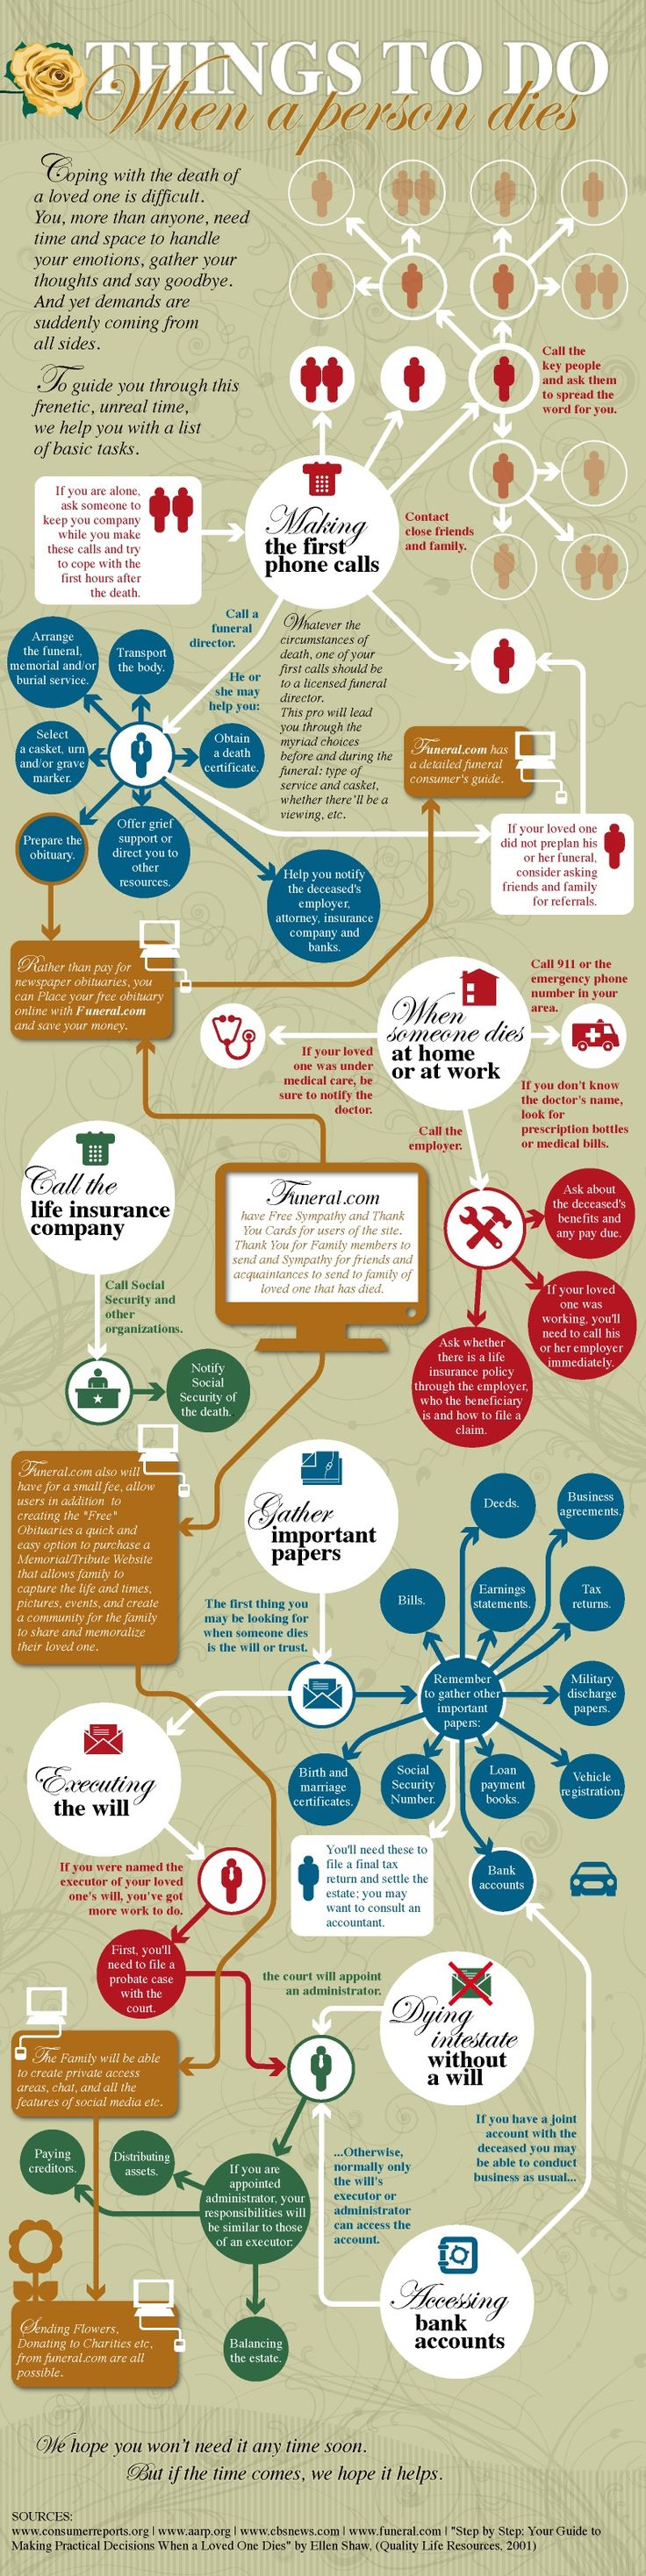 7 Creative & Fascinating Funeral-Related Inforgraphics | Leading Funeral Publication